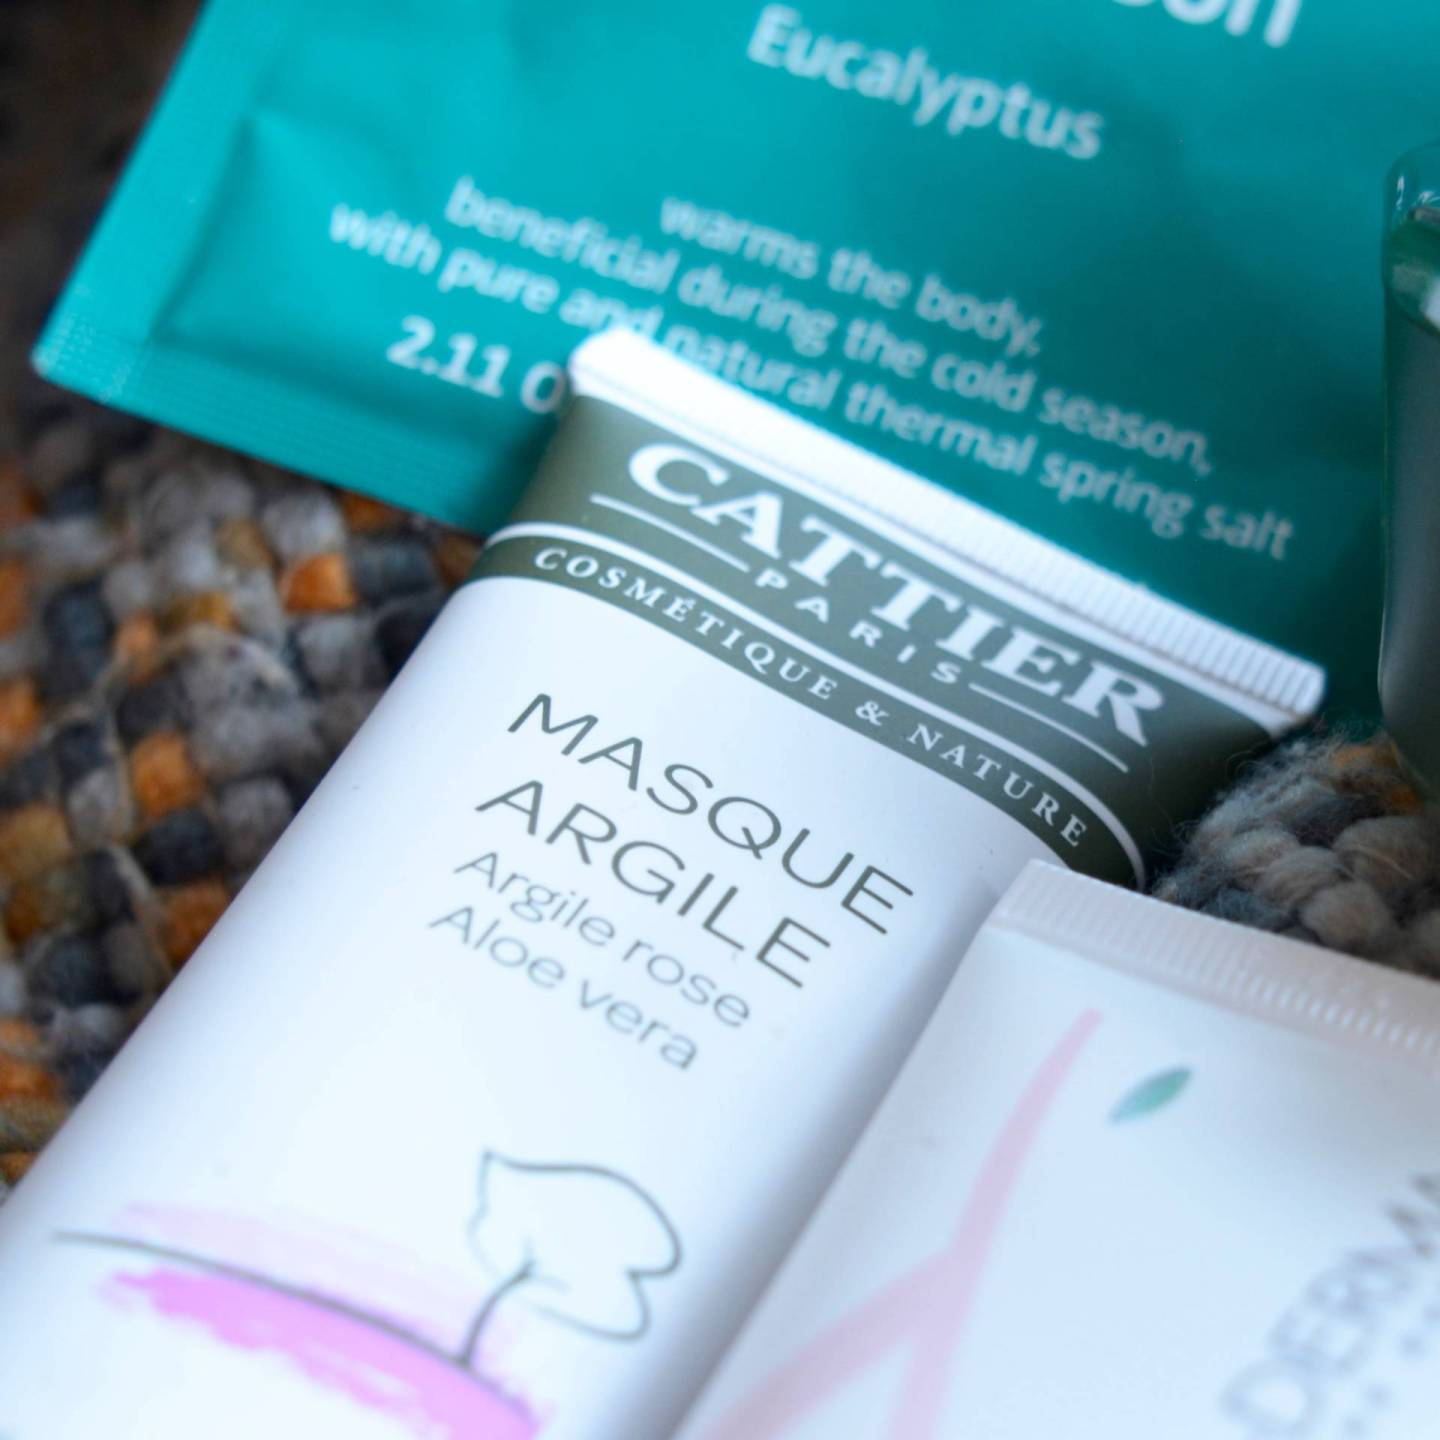 Winter pamper - If you're looking for an affordable clay mask with great results that is also suitable for sensitive skin, this may be your new BFF